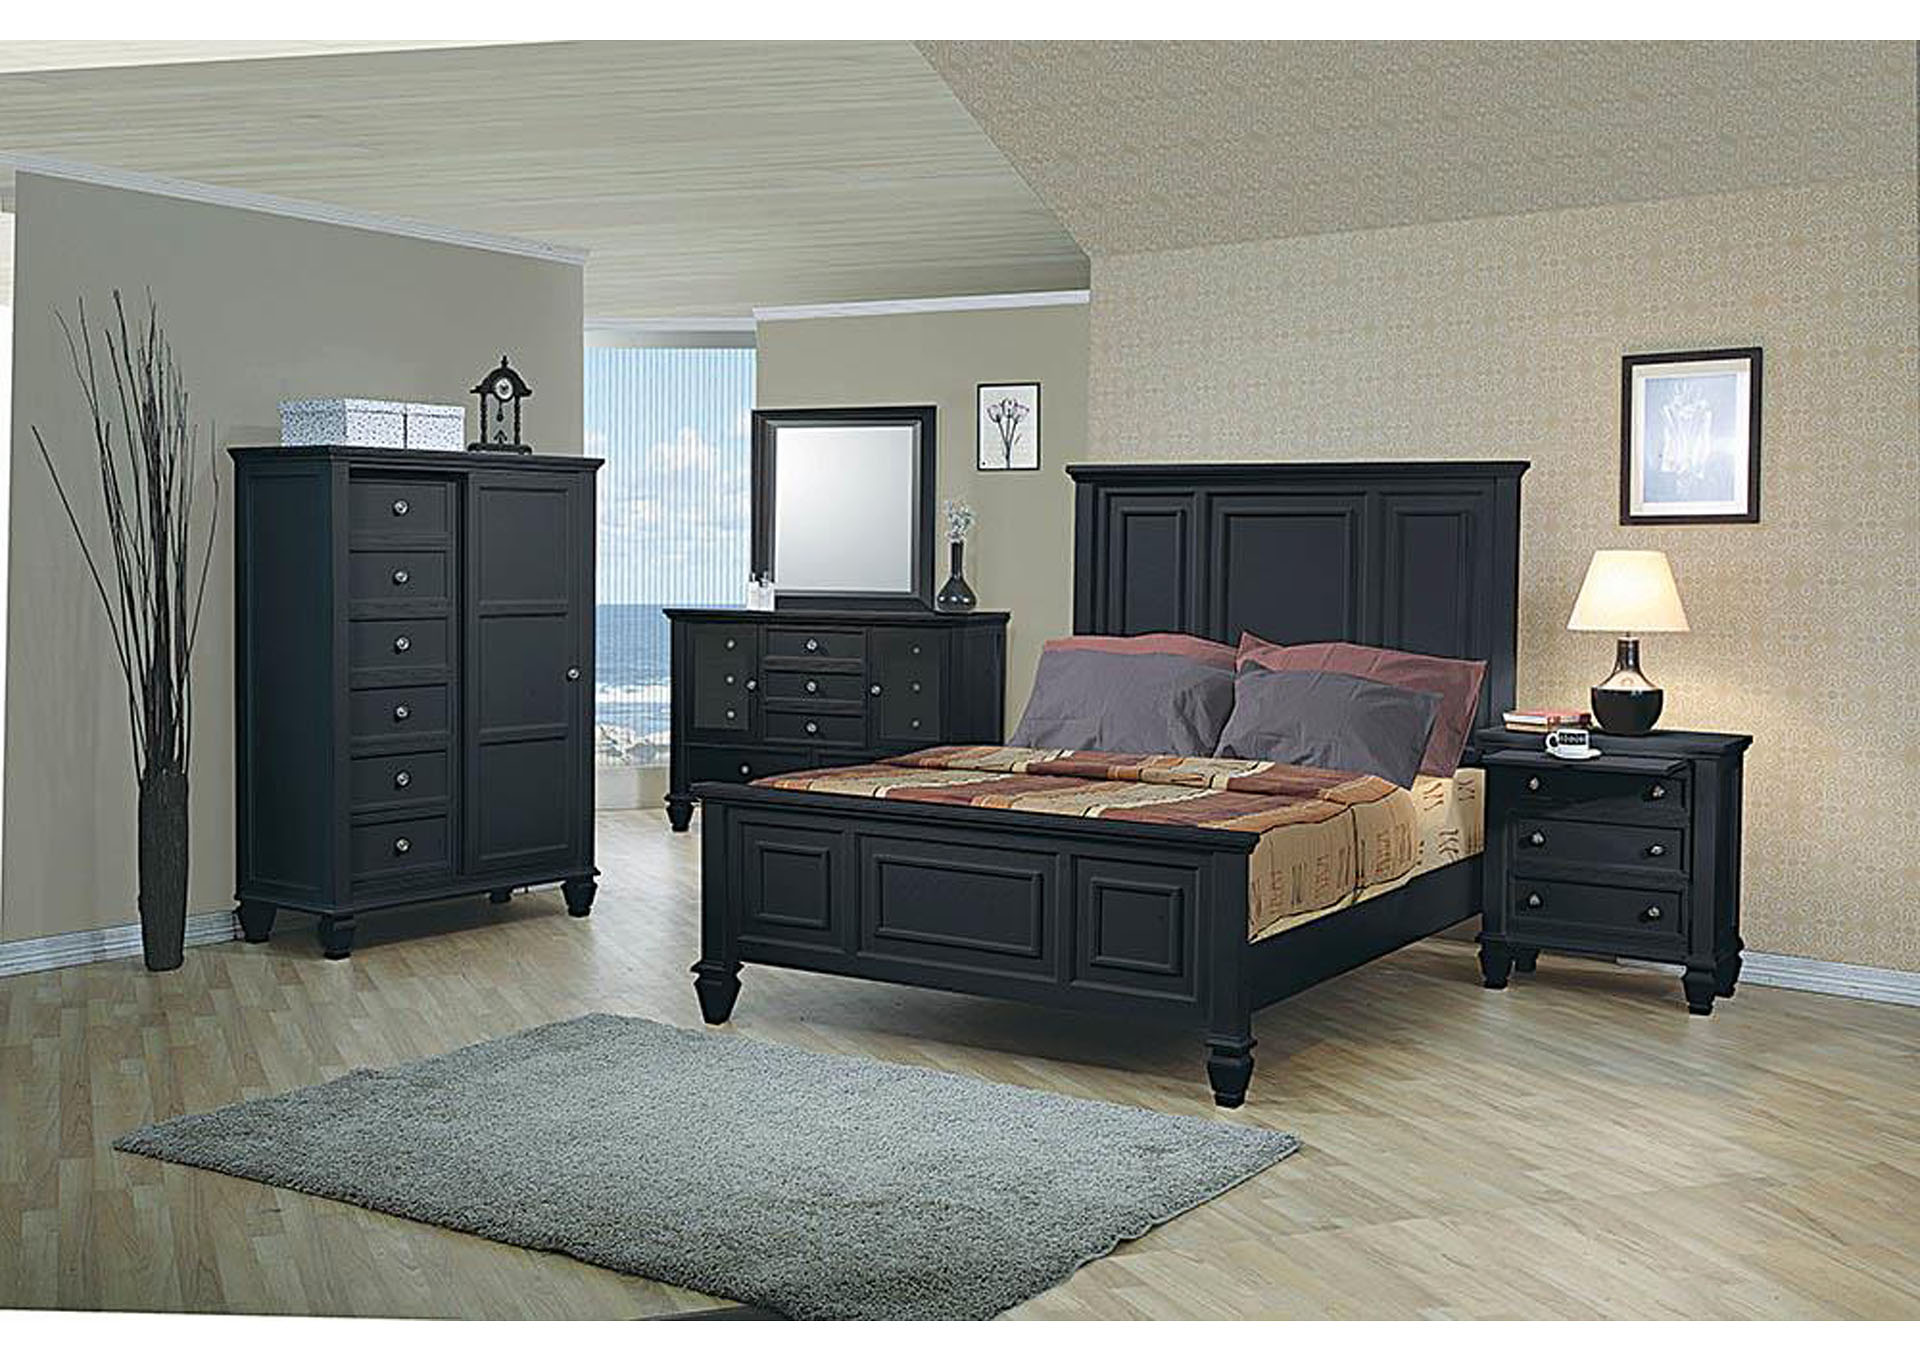 Sandy Beach Black California King Bed,Coaster Furniture